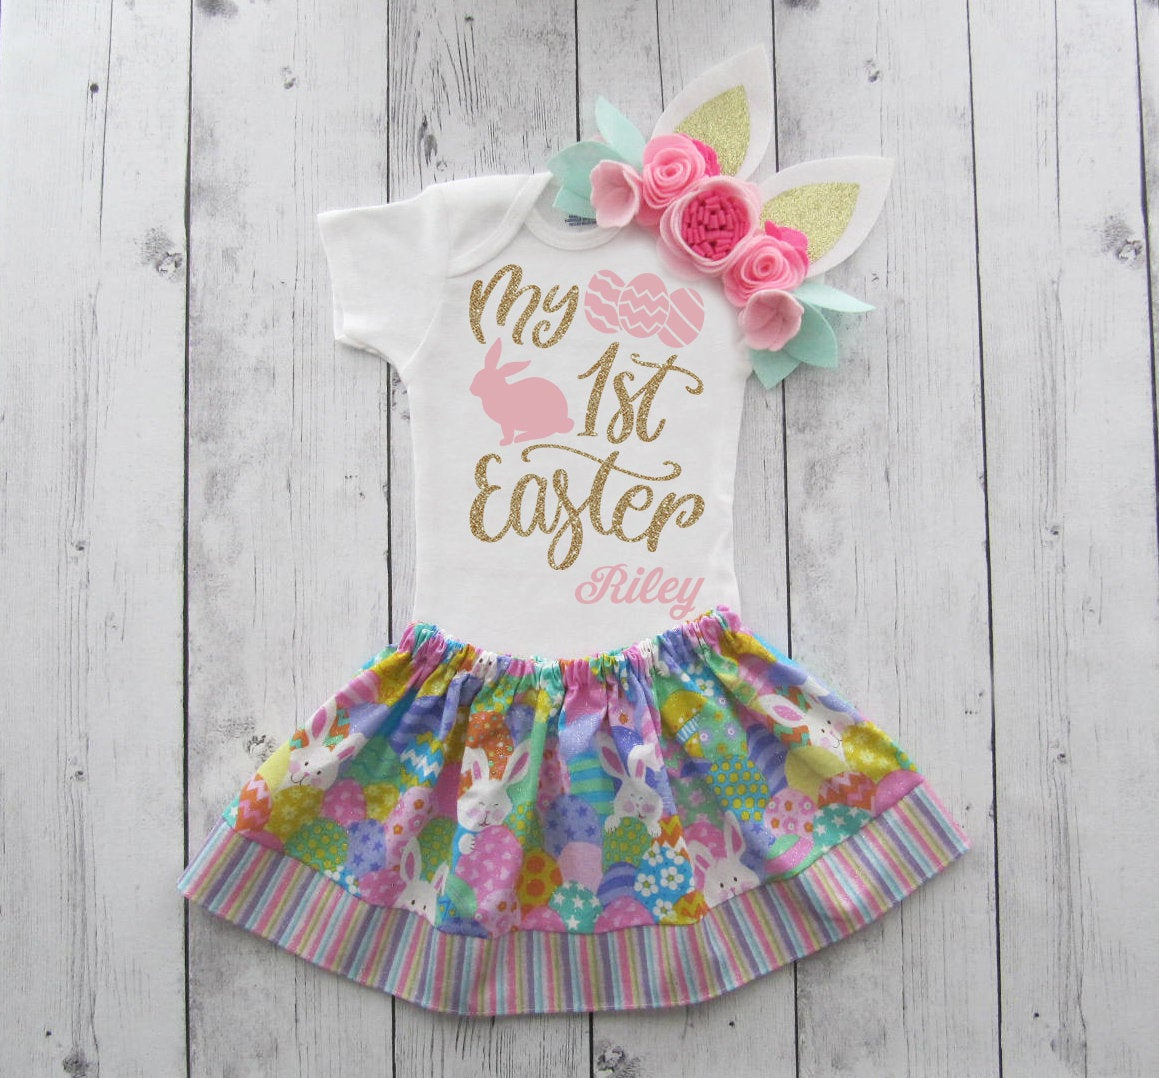 My First Easter Dress - easter bunny, first easter shirt, pink gold, baby girl first easter, first easter outfit, my first easter girl